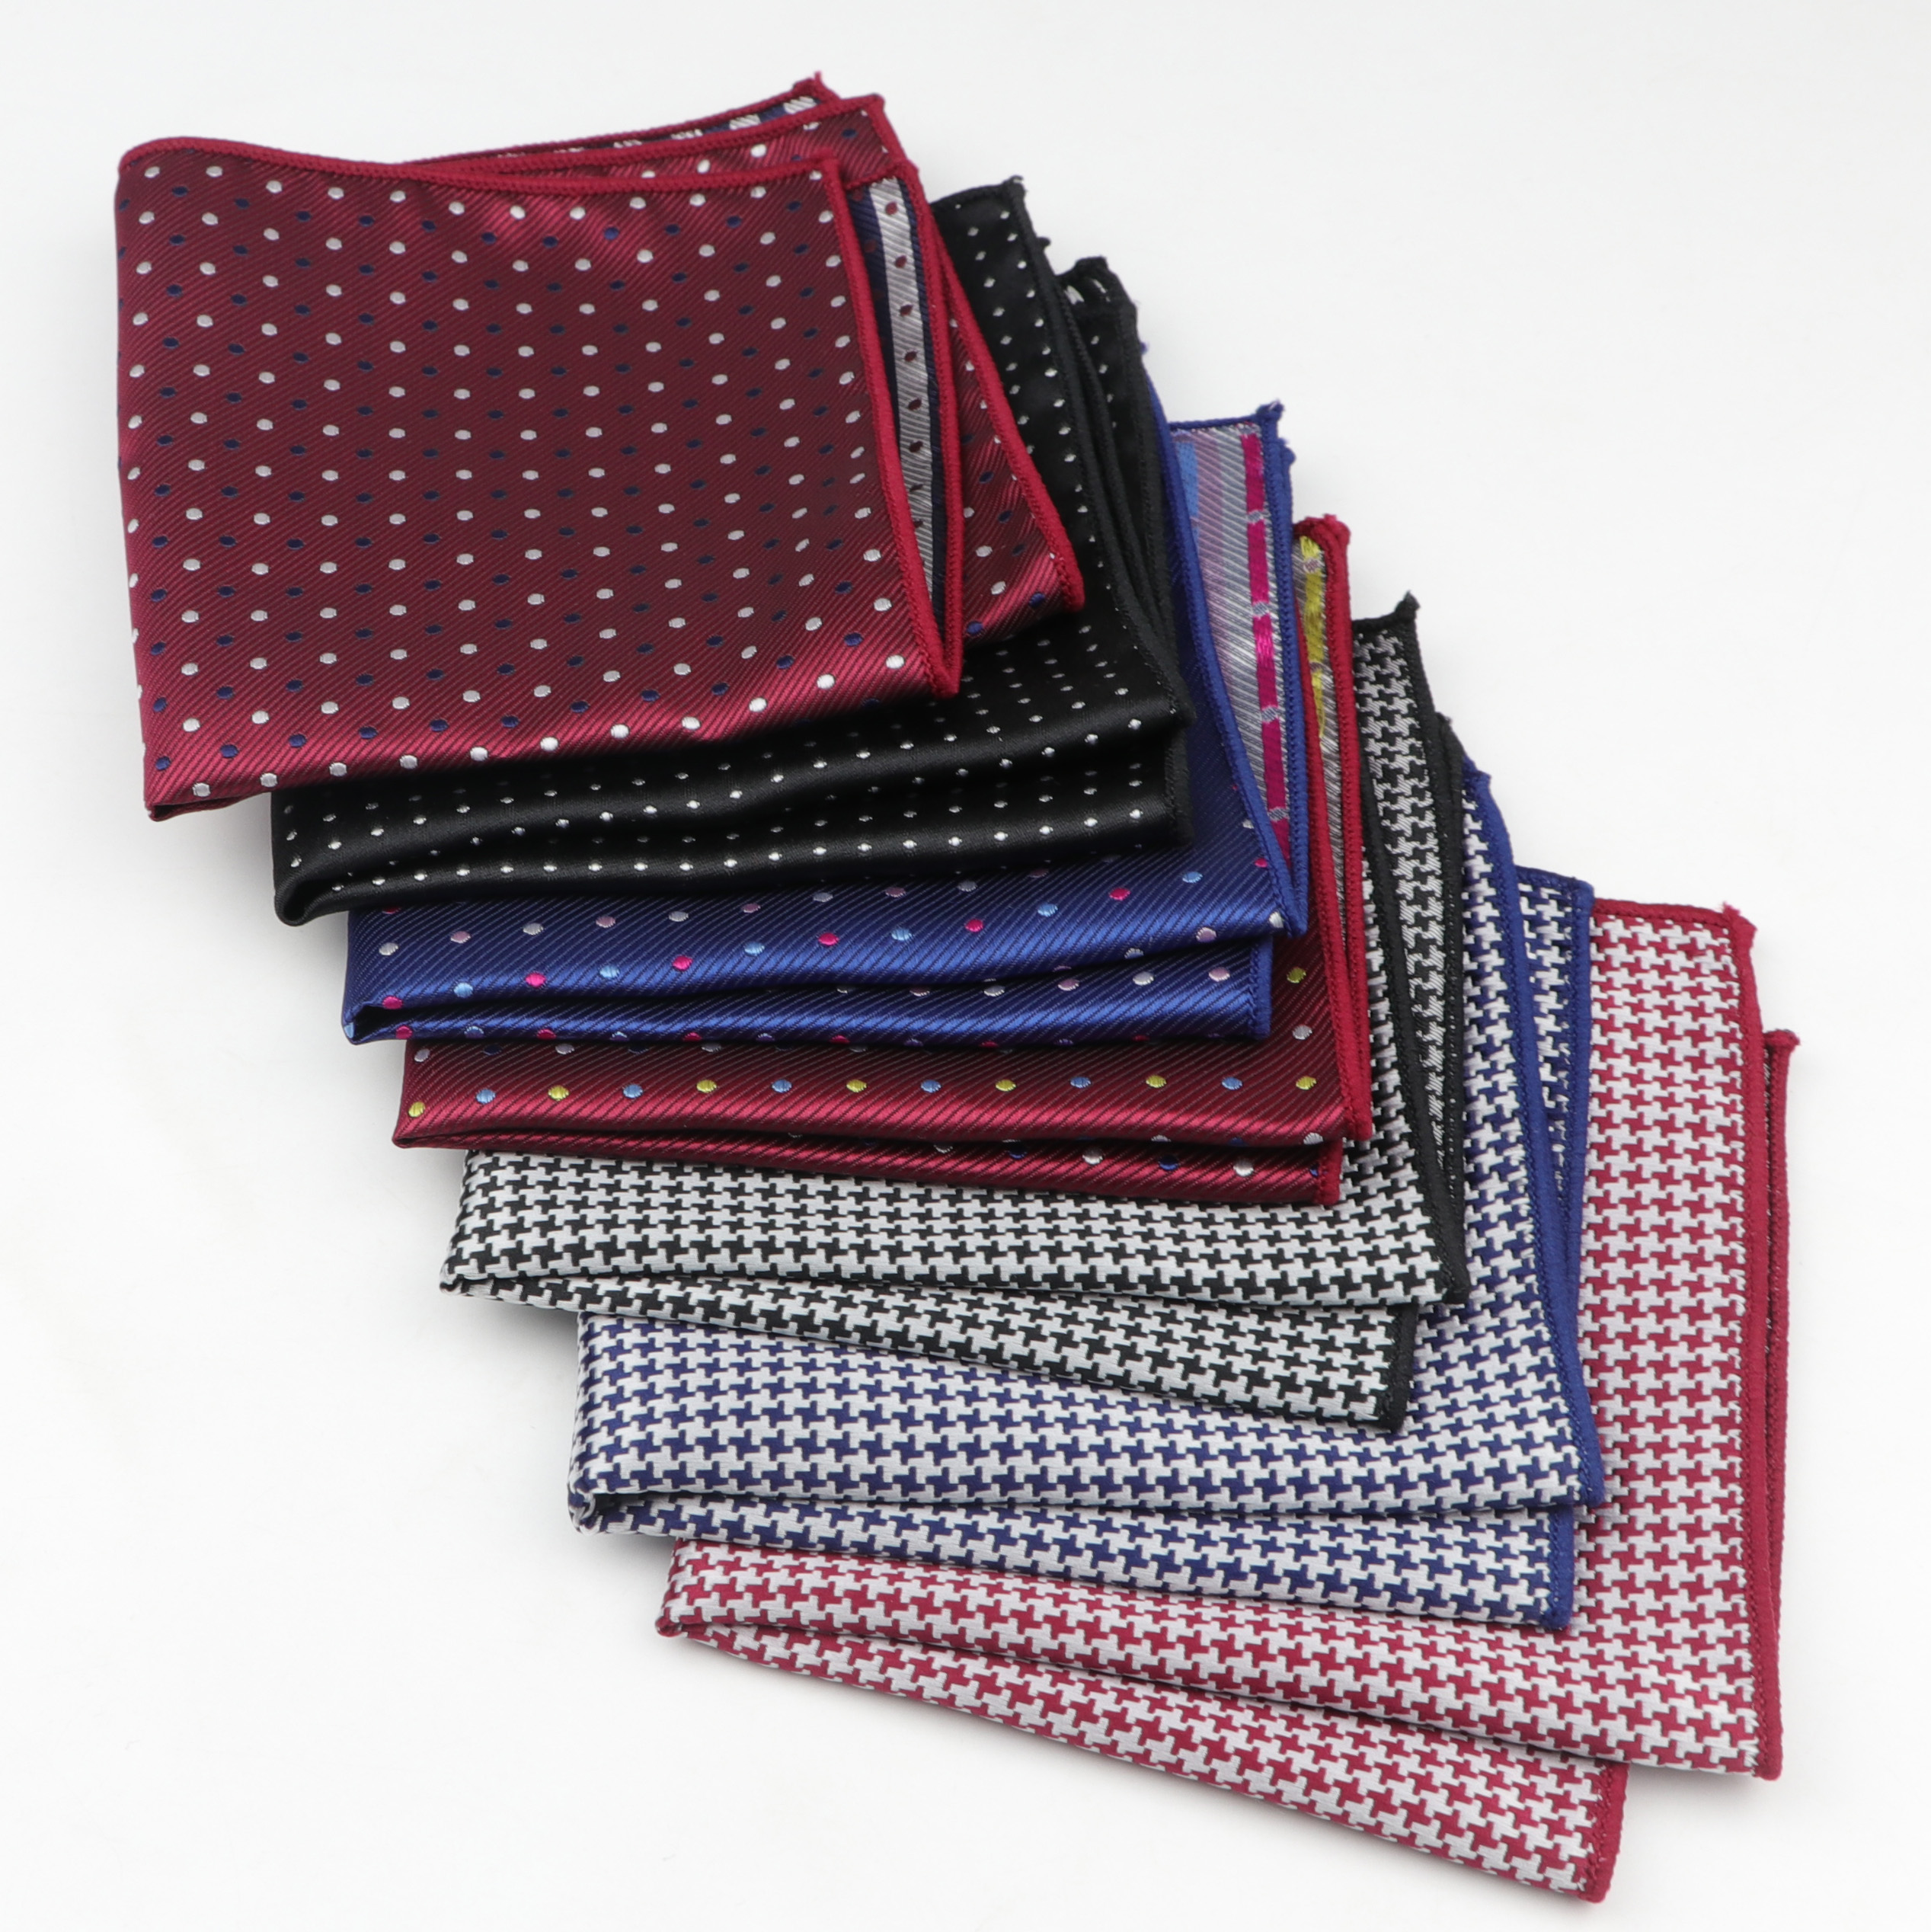 Dot Handkerchief Polyester Scarves Vintage Fabric Of Business Suit Hankies Men's Pocket Striped Square Handkerchiefs 22*22cm